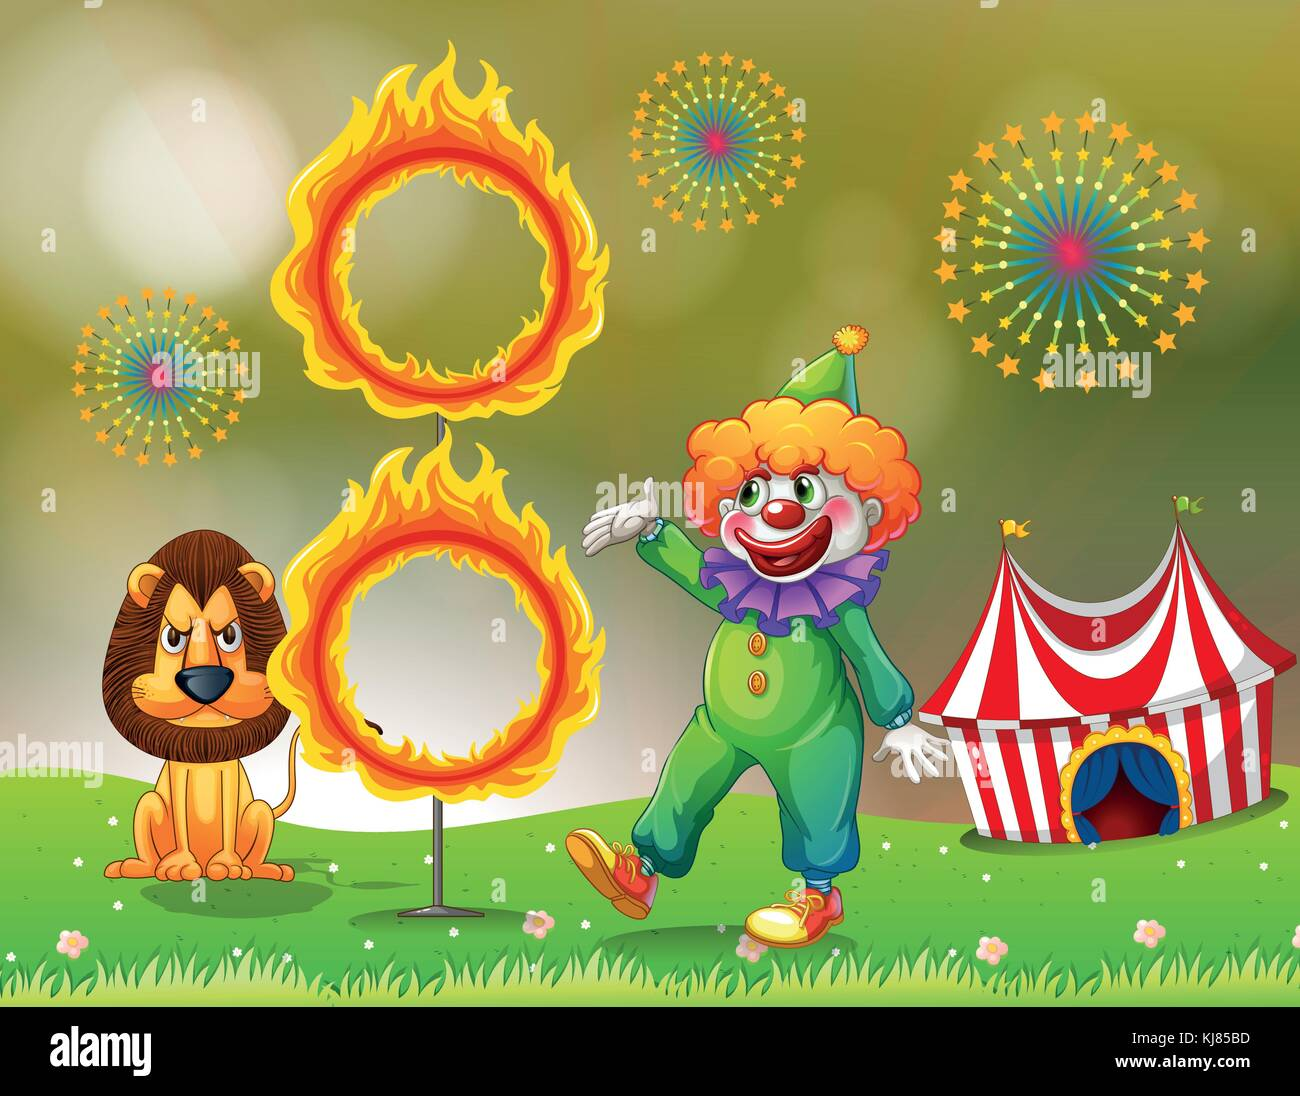 Illustration of a ring of fire with a clown and a lion at the carnival - Stock Image